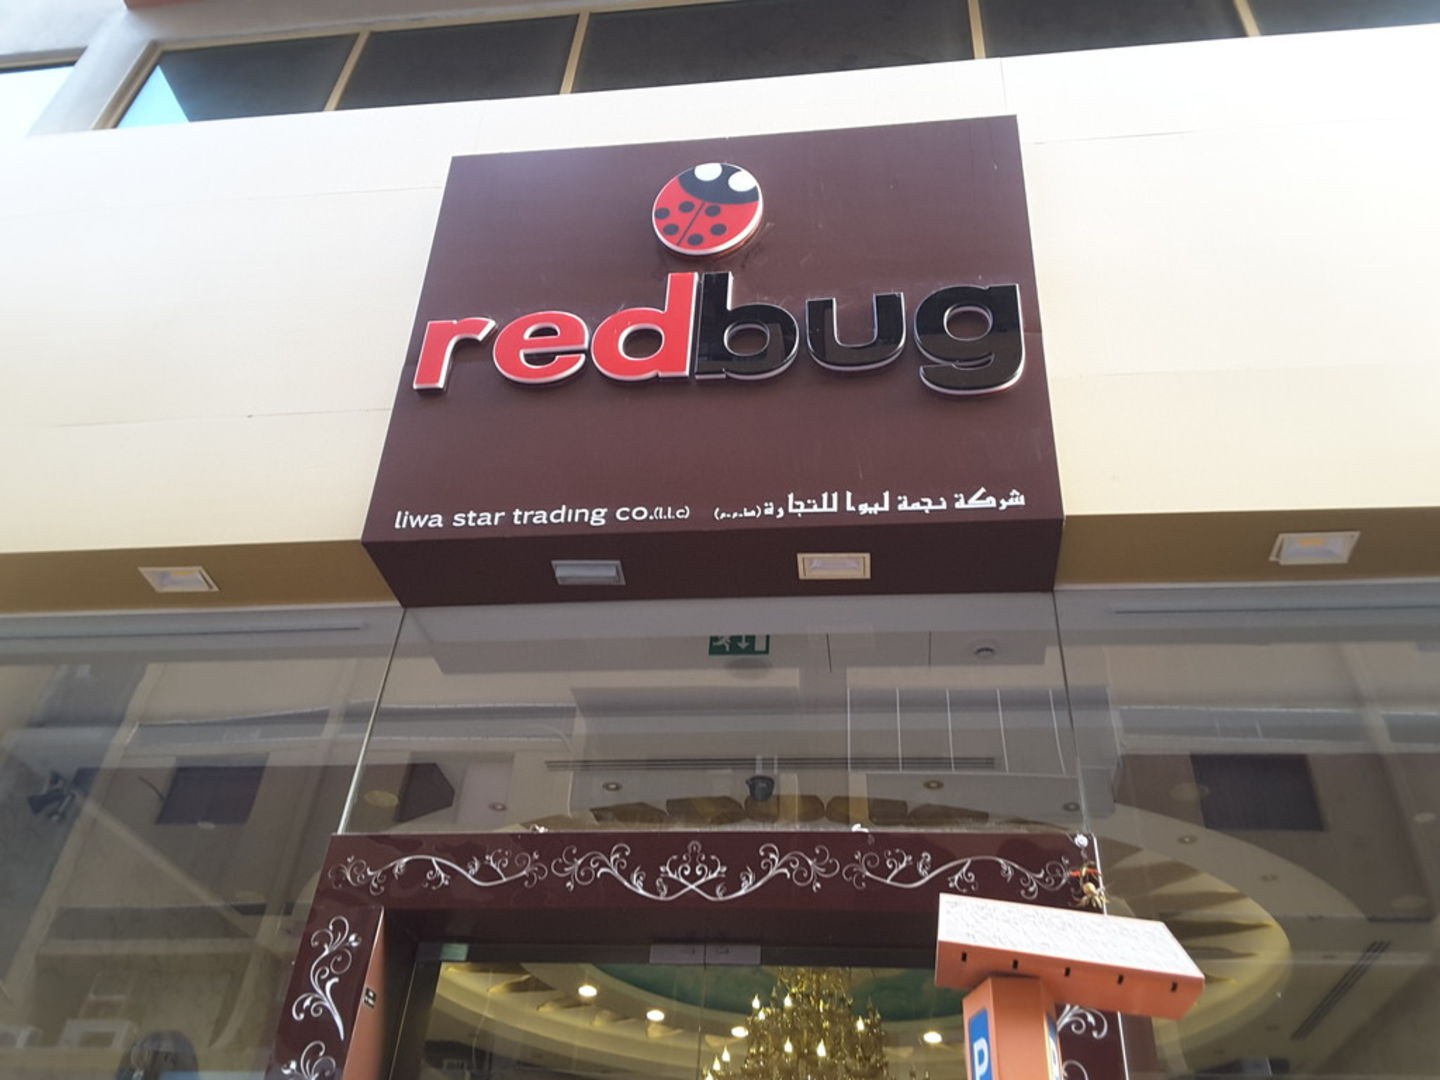 HiDubai-business-red-bug-shopping-fashion-accessories-al-fahidi-al-souq-al-kabeer-dubai